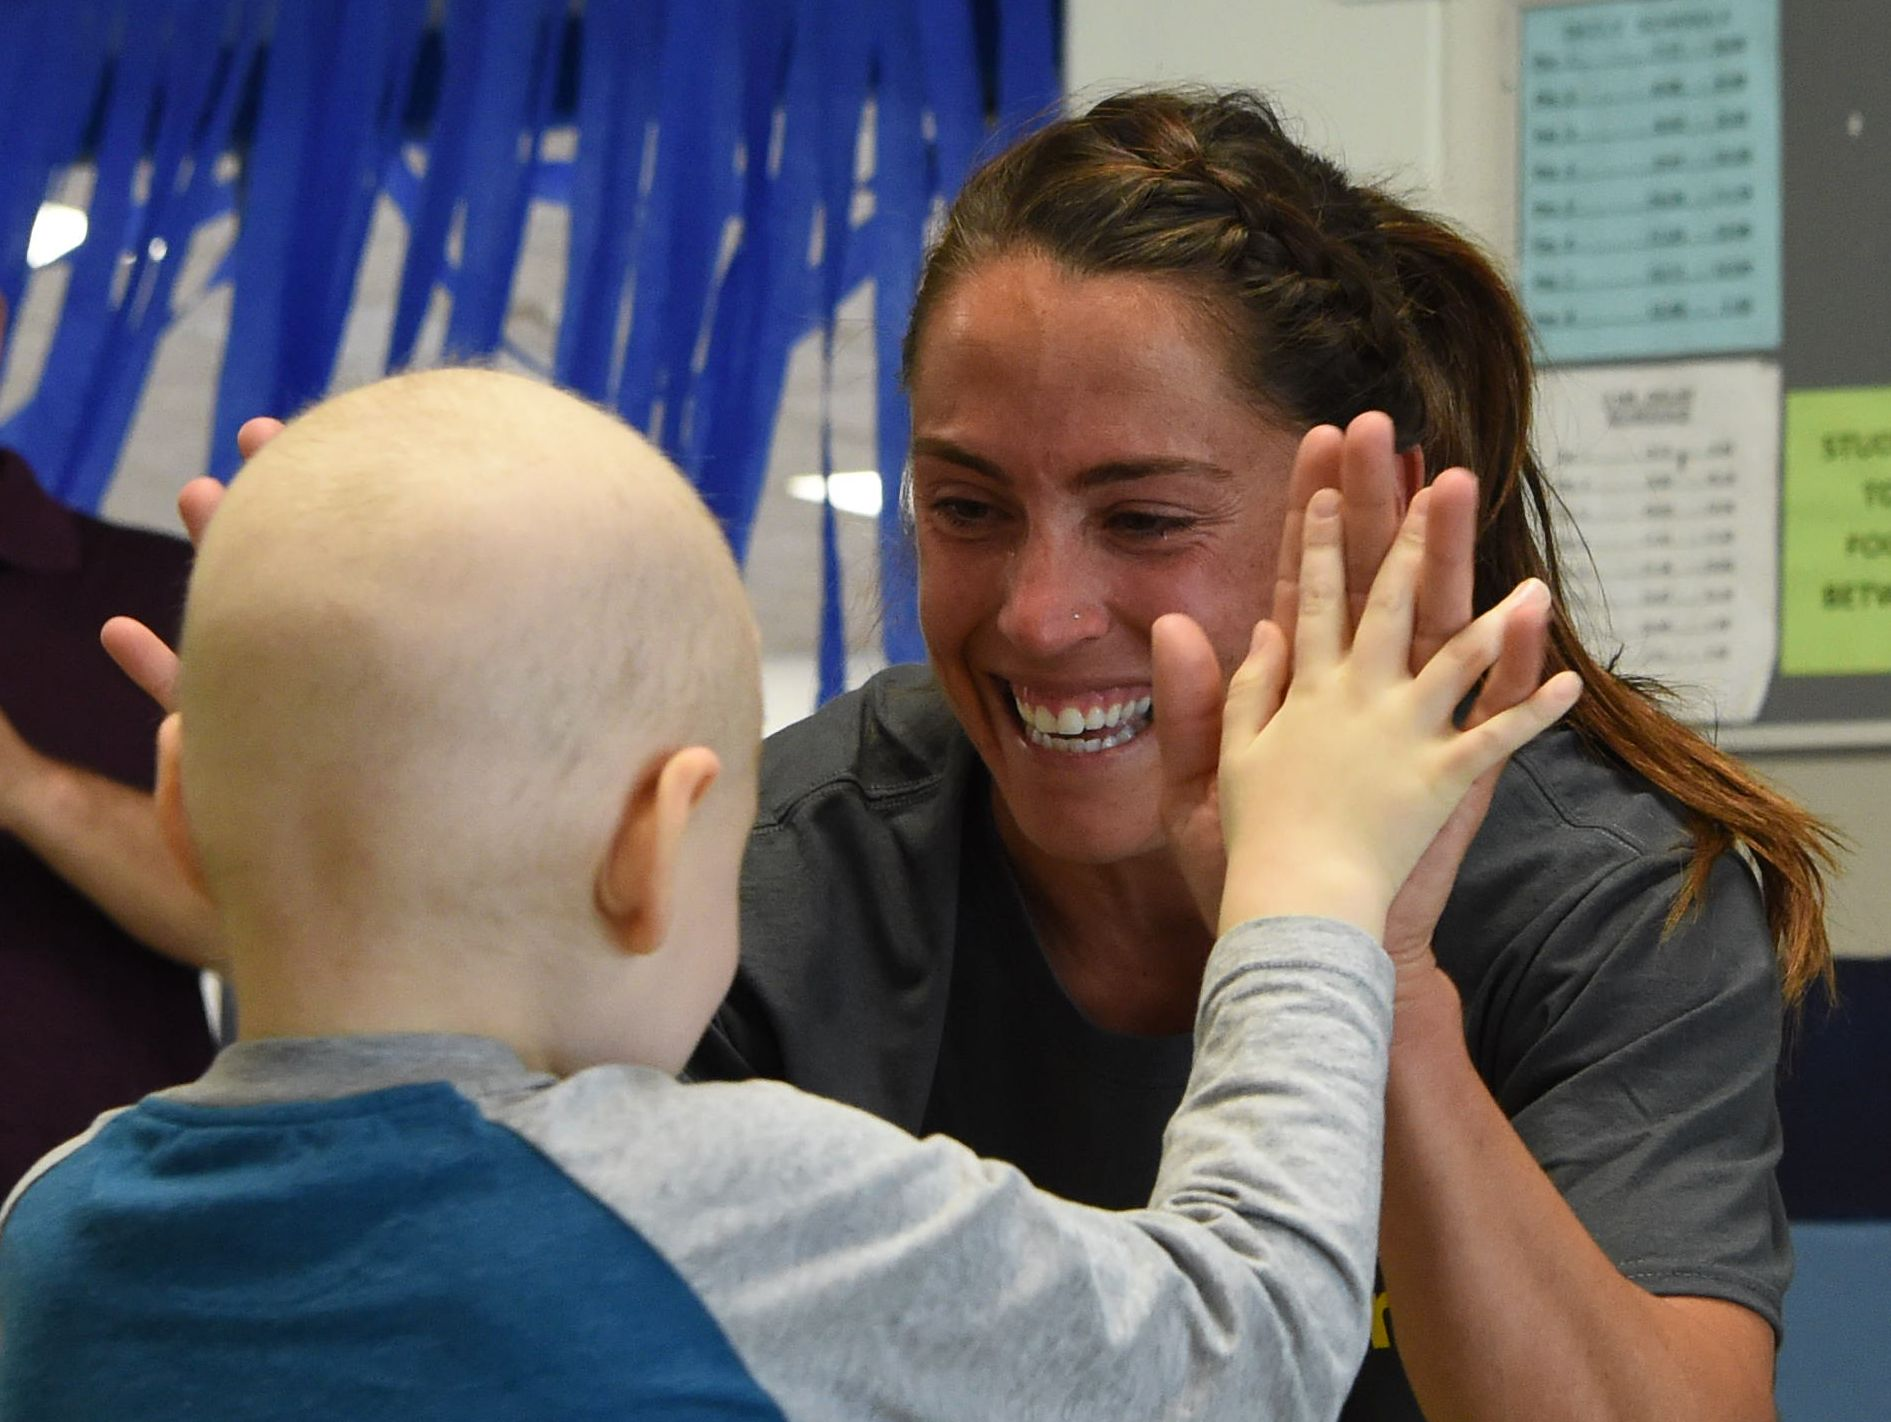 """Kristen Perry, right, a physical education teacher and the field hockey coach at John Jay High School, gives high fives to Liam Craane, 5, who is battling pediatric cancer. The school's field hockey team """"adopted"""" Liam through the Friends of Jaclyn Foundation."""